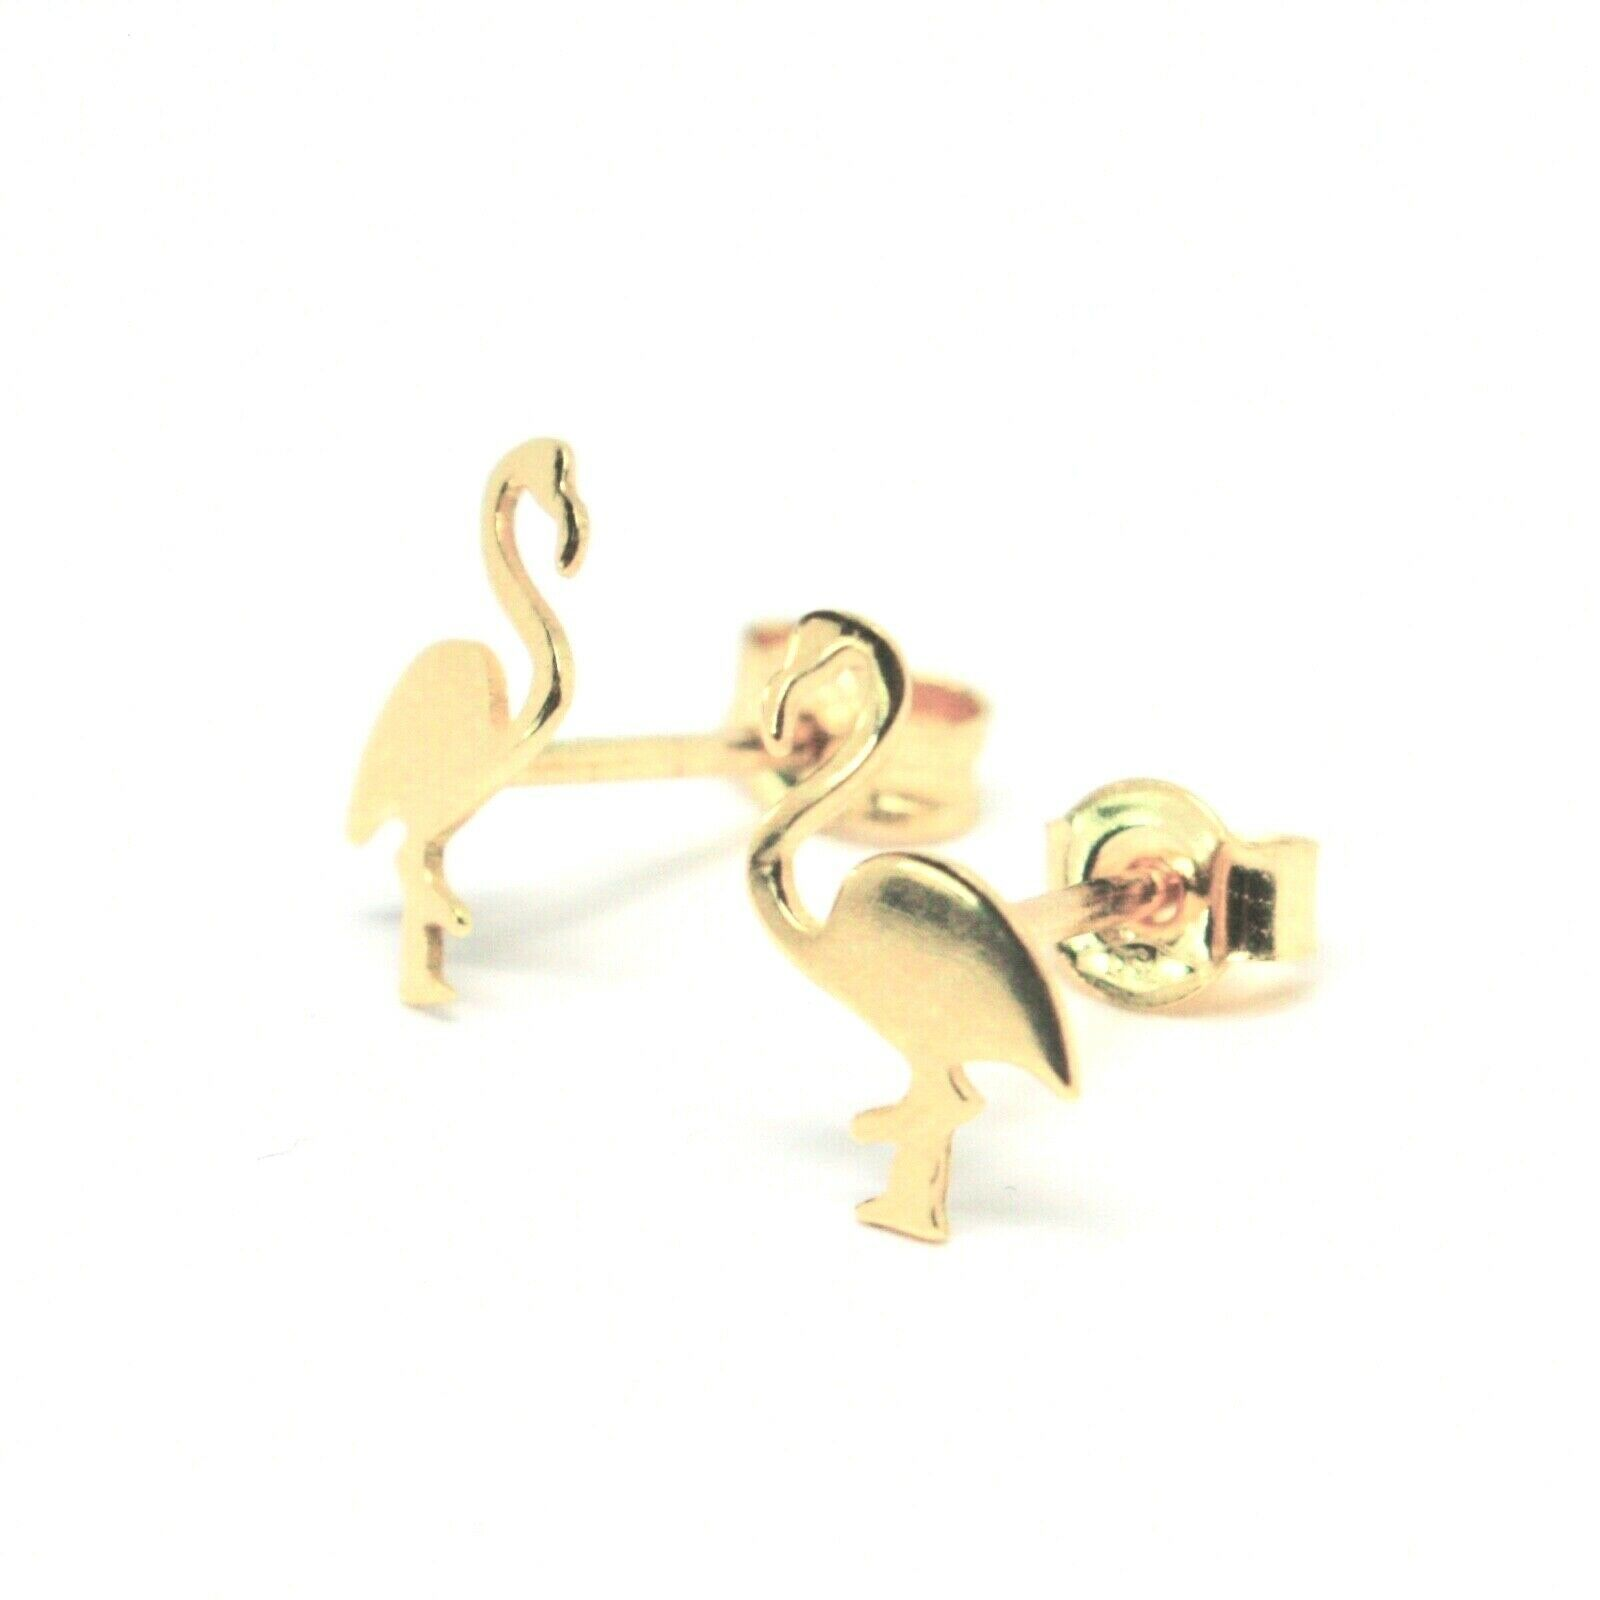 Gold Earrings 18K 750 Shaped Flamingo to Sheet Glossy Made in Italy